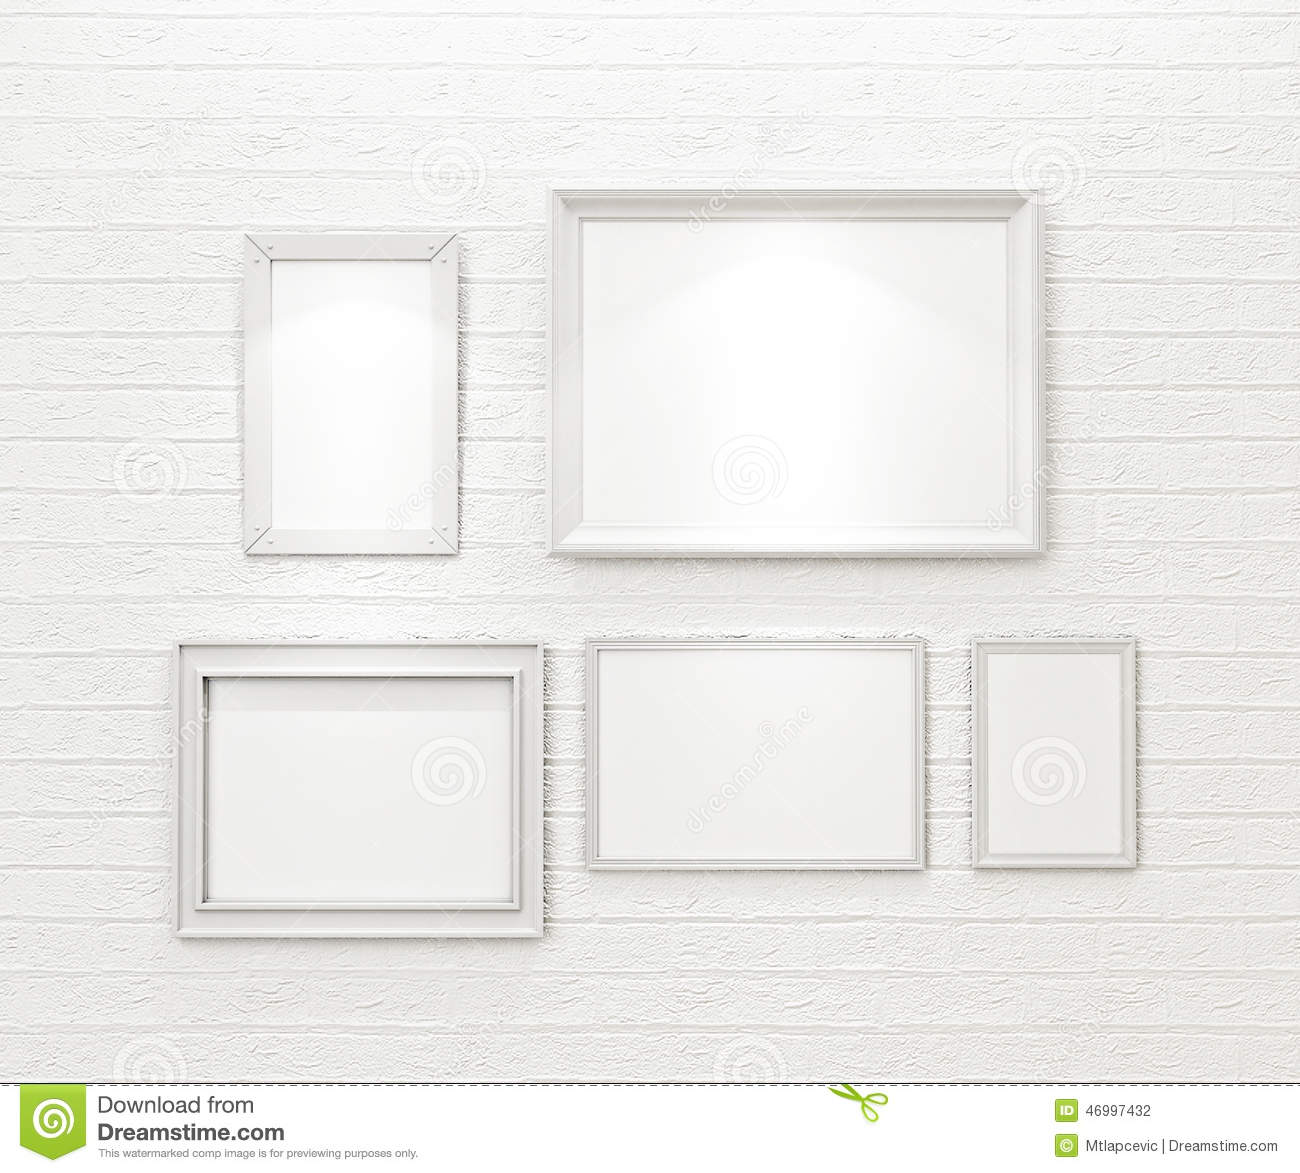 Composition of white blank picture frames on white brick wall with spotlights